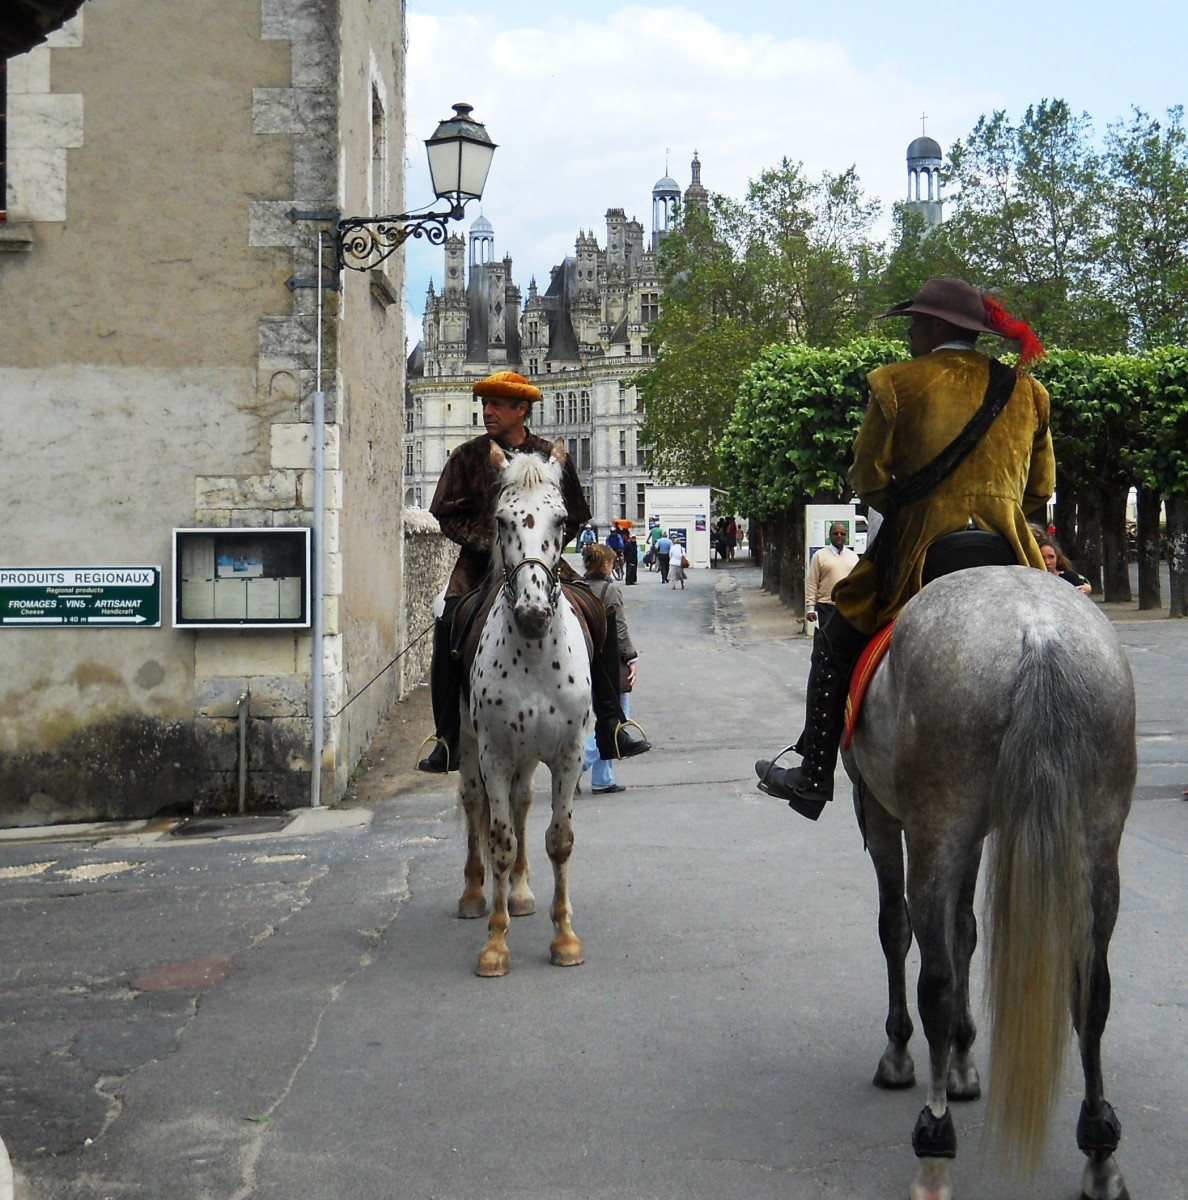 Costumed actors on horseback roam the château property and interact with visitors.